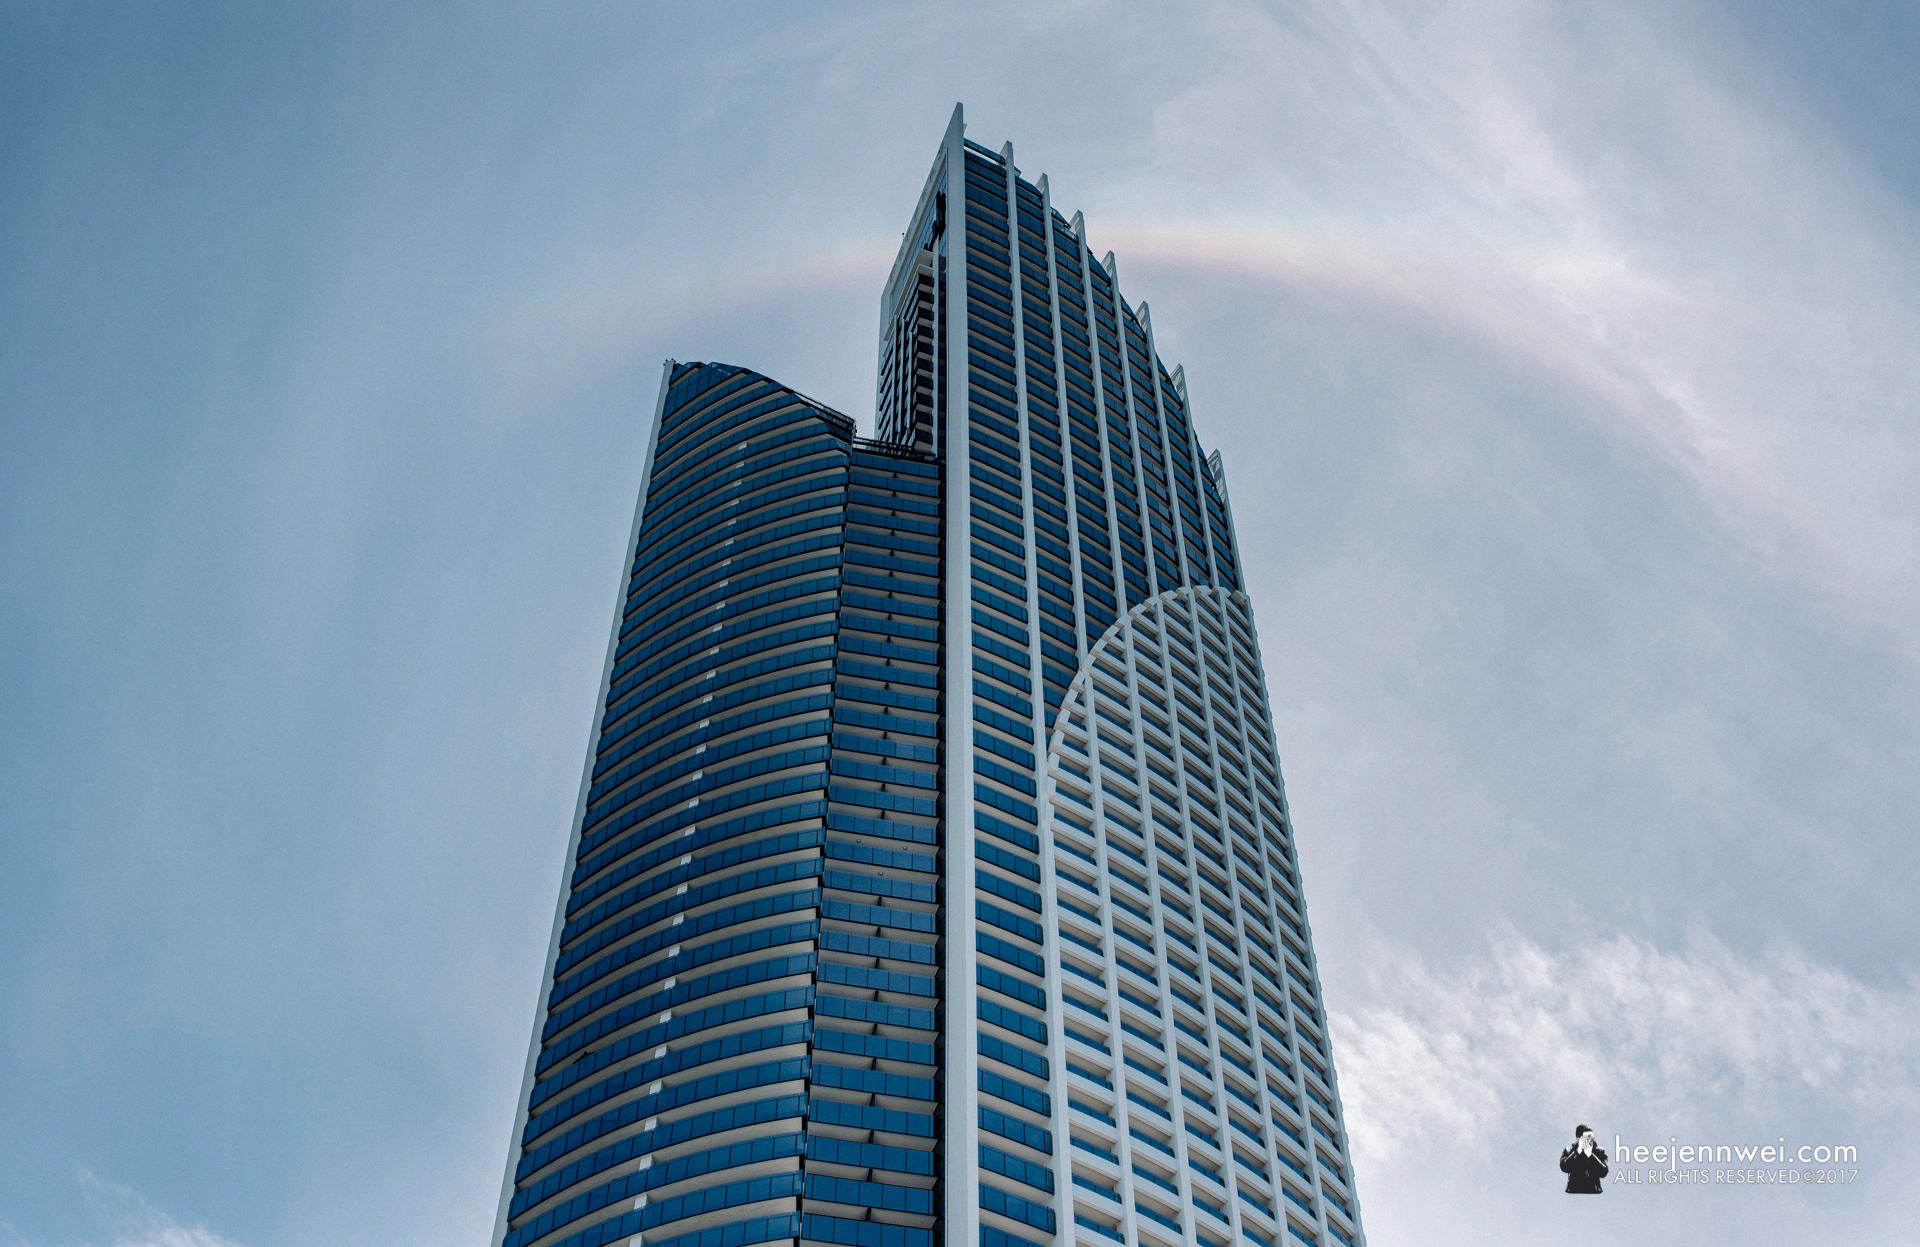 A distant quater circle rainbow formed above Peppers Soul, a luxury condominium located on the Surfers Paradise foreshore with spectacular uninterrupted ocean views.